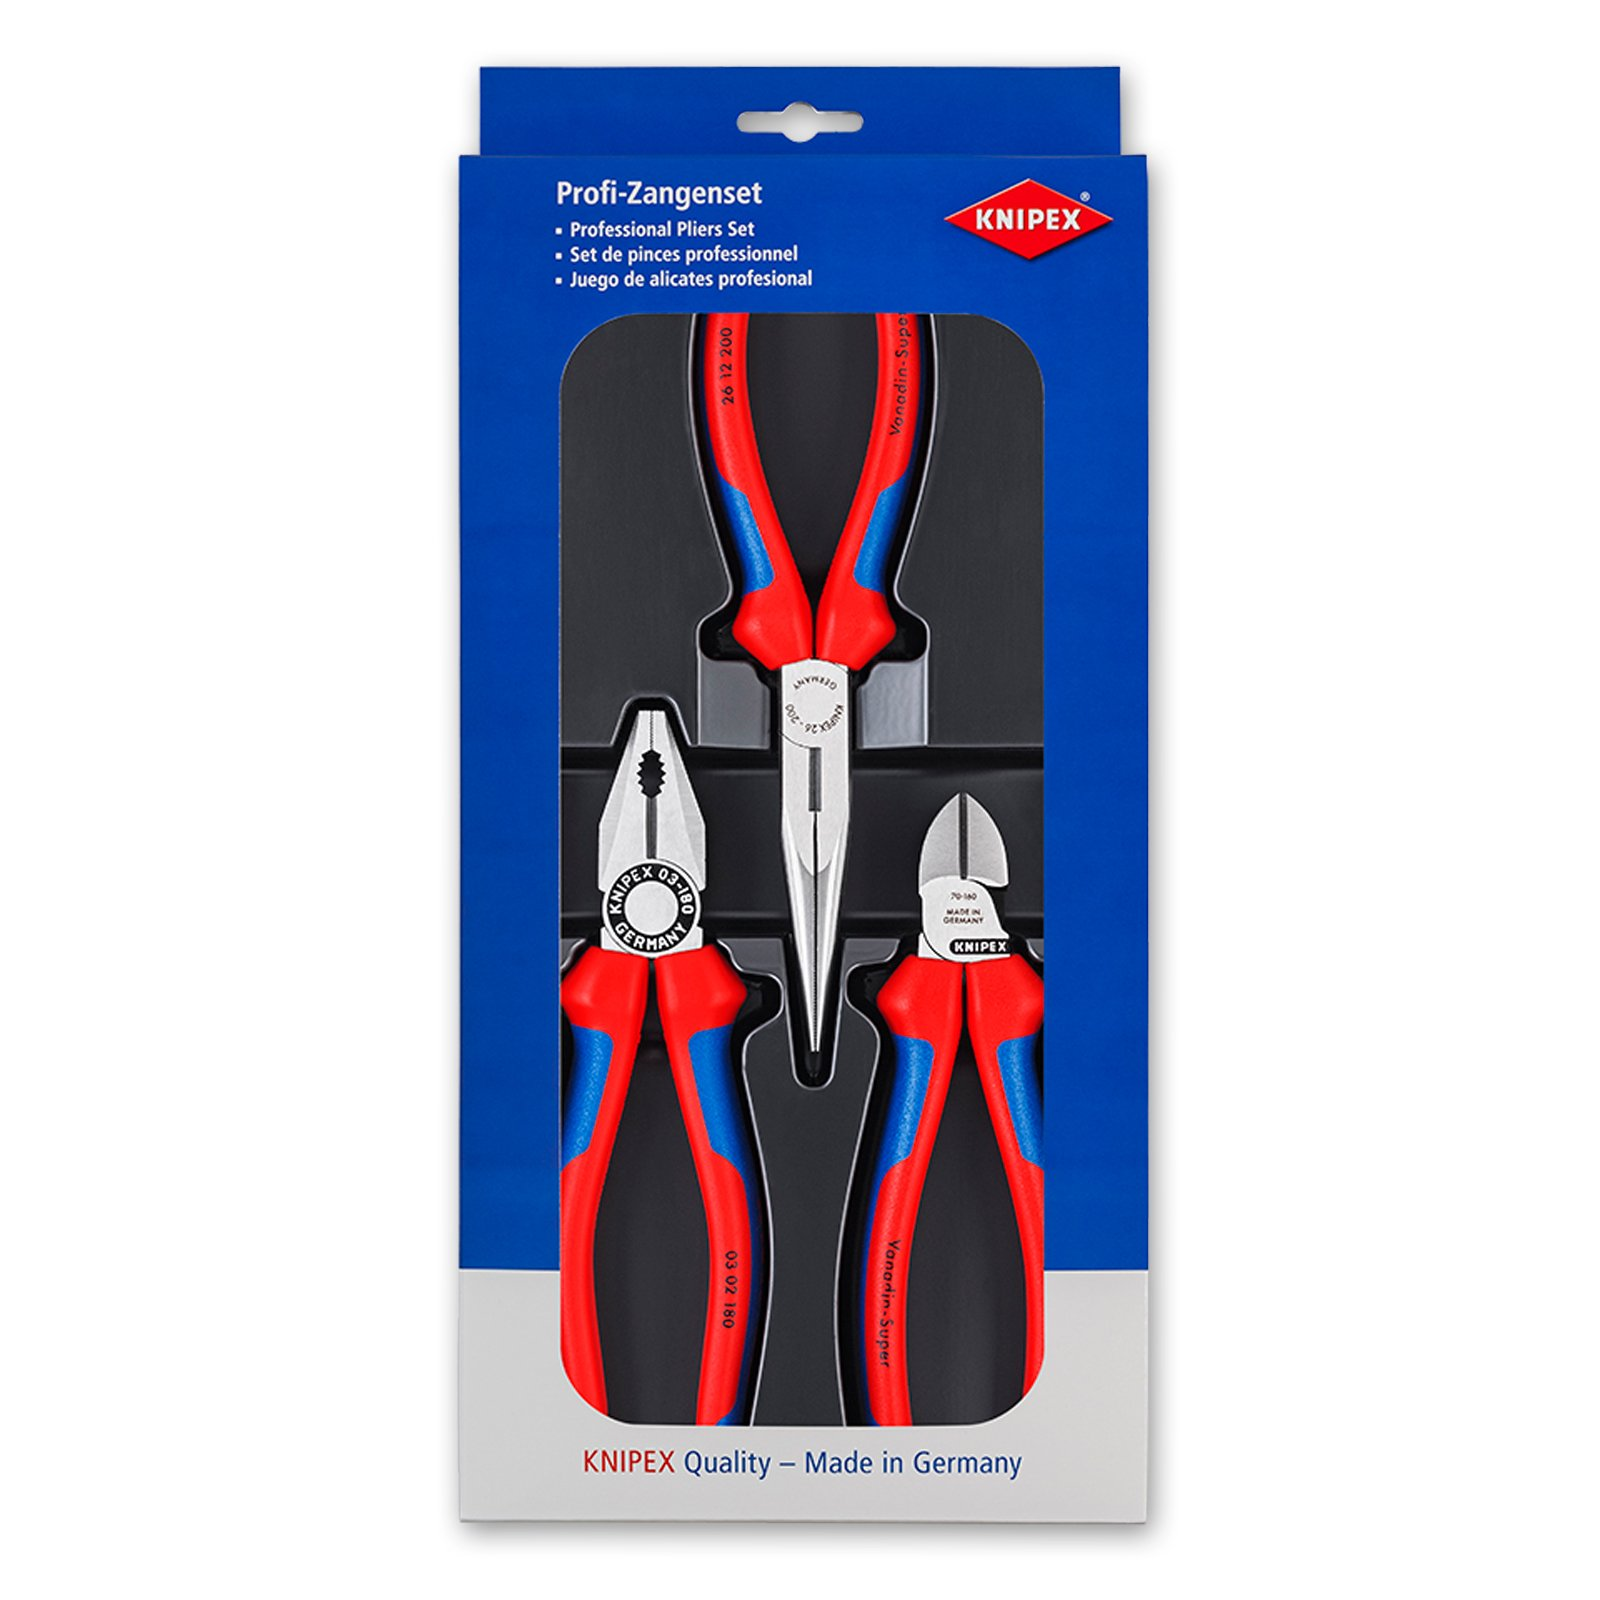 Knipex 00 20 11''Assembly'' Pliers Set (3 Piece) by KNIPEX Tools